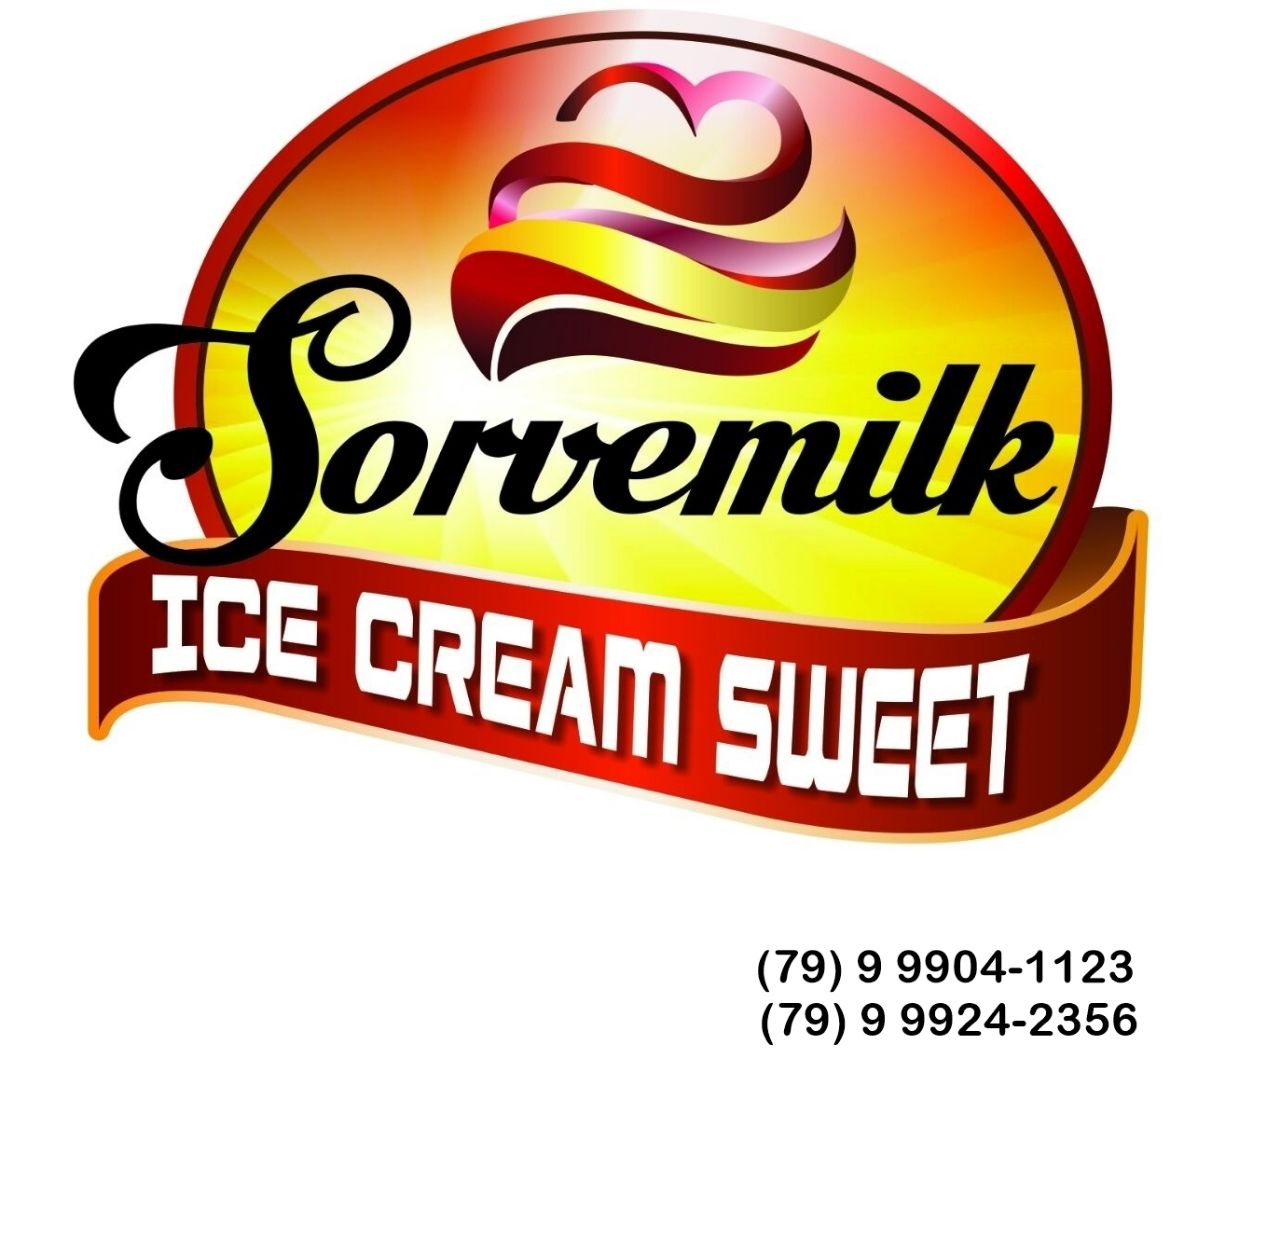 SORVEMILK: ICE CREAM SWEET